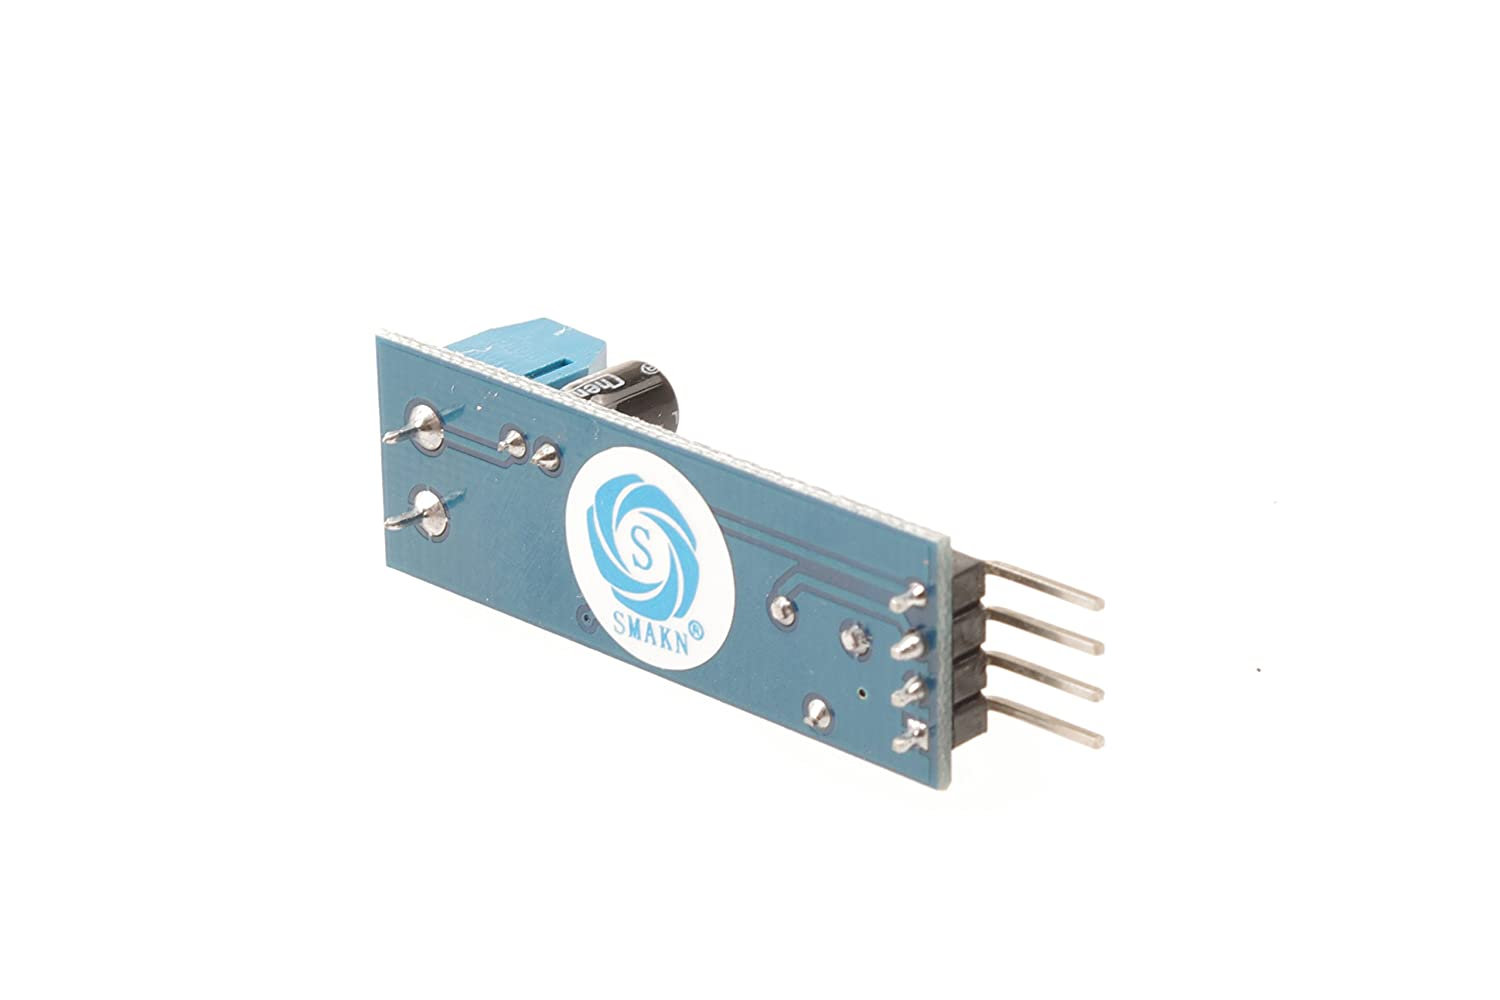 Smakn Lm386 Audio Amplifier Module 200 Times 5 12v 10k 2 Watts Stereo Using Three Adjustable Resistance Electronics